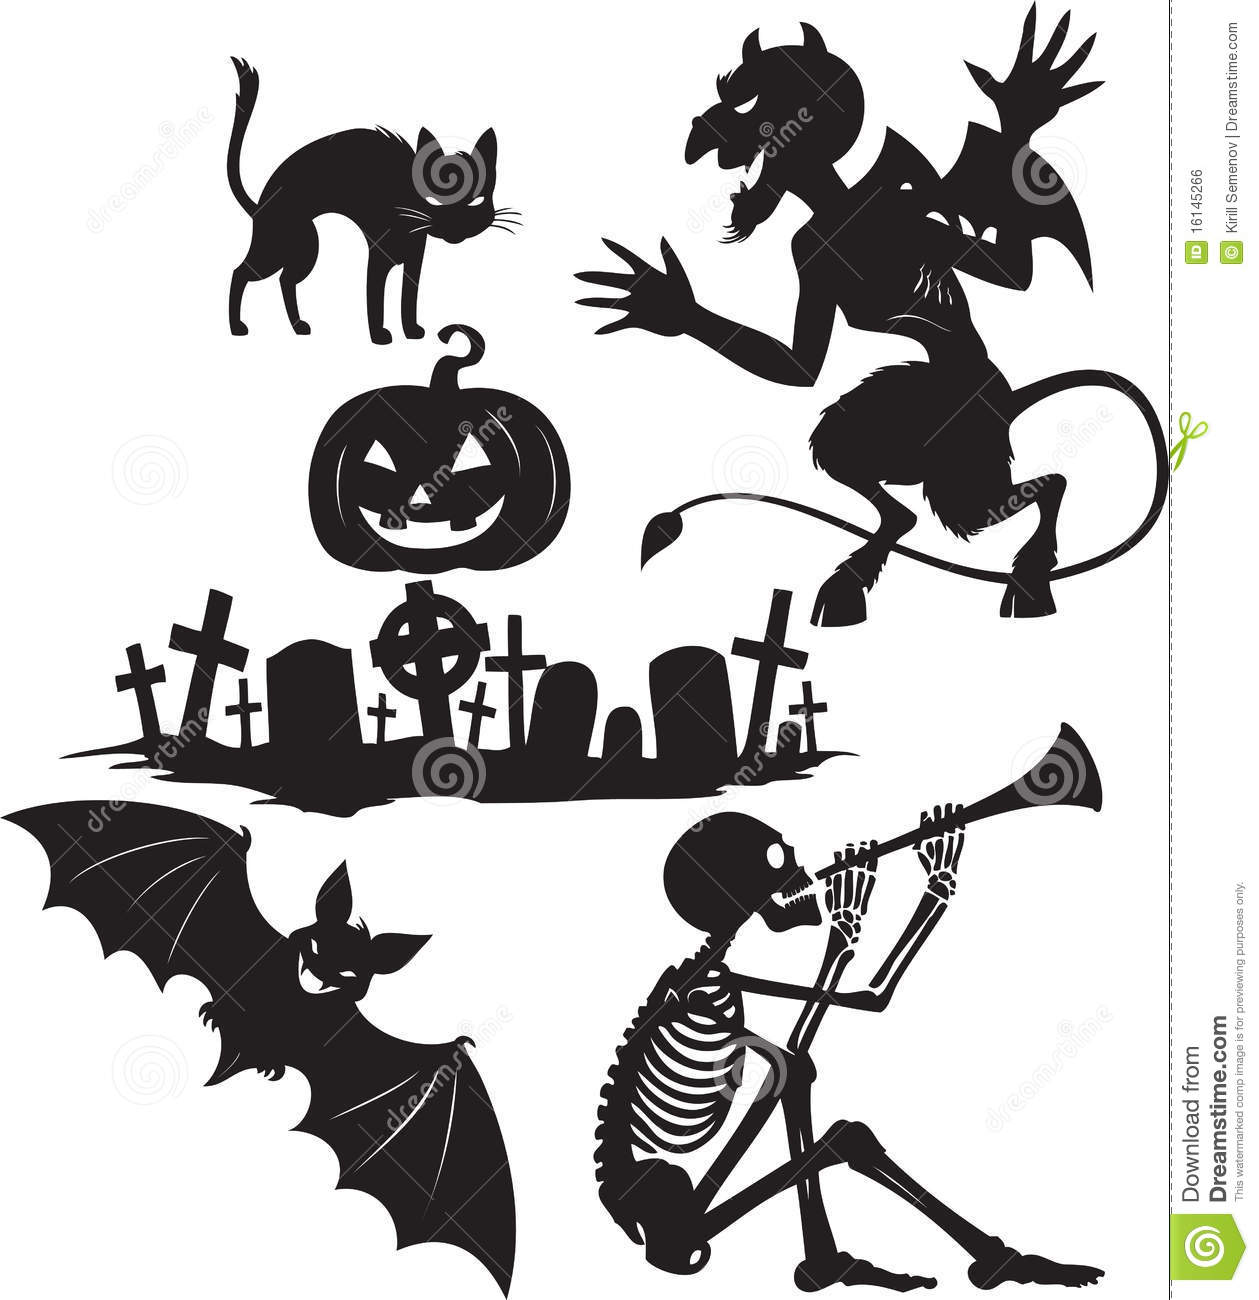 Halloween Shapes Royalty Free Stock Image